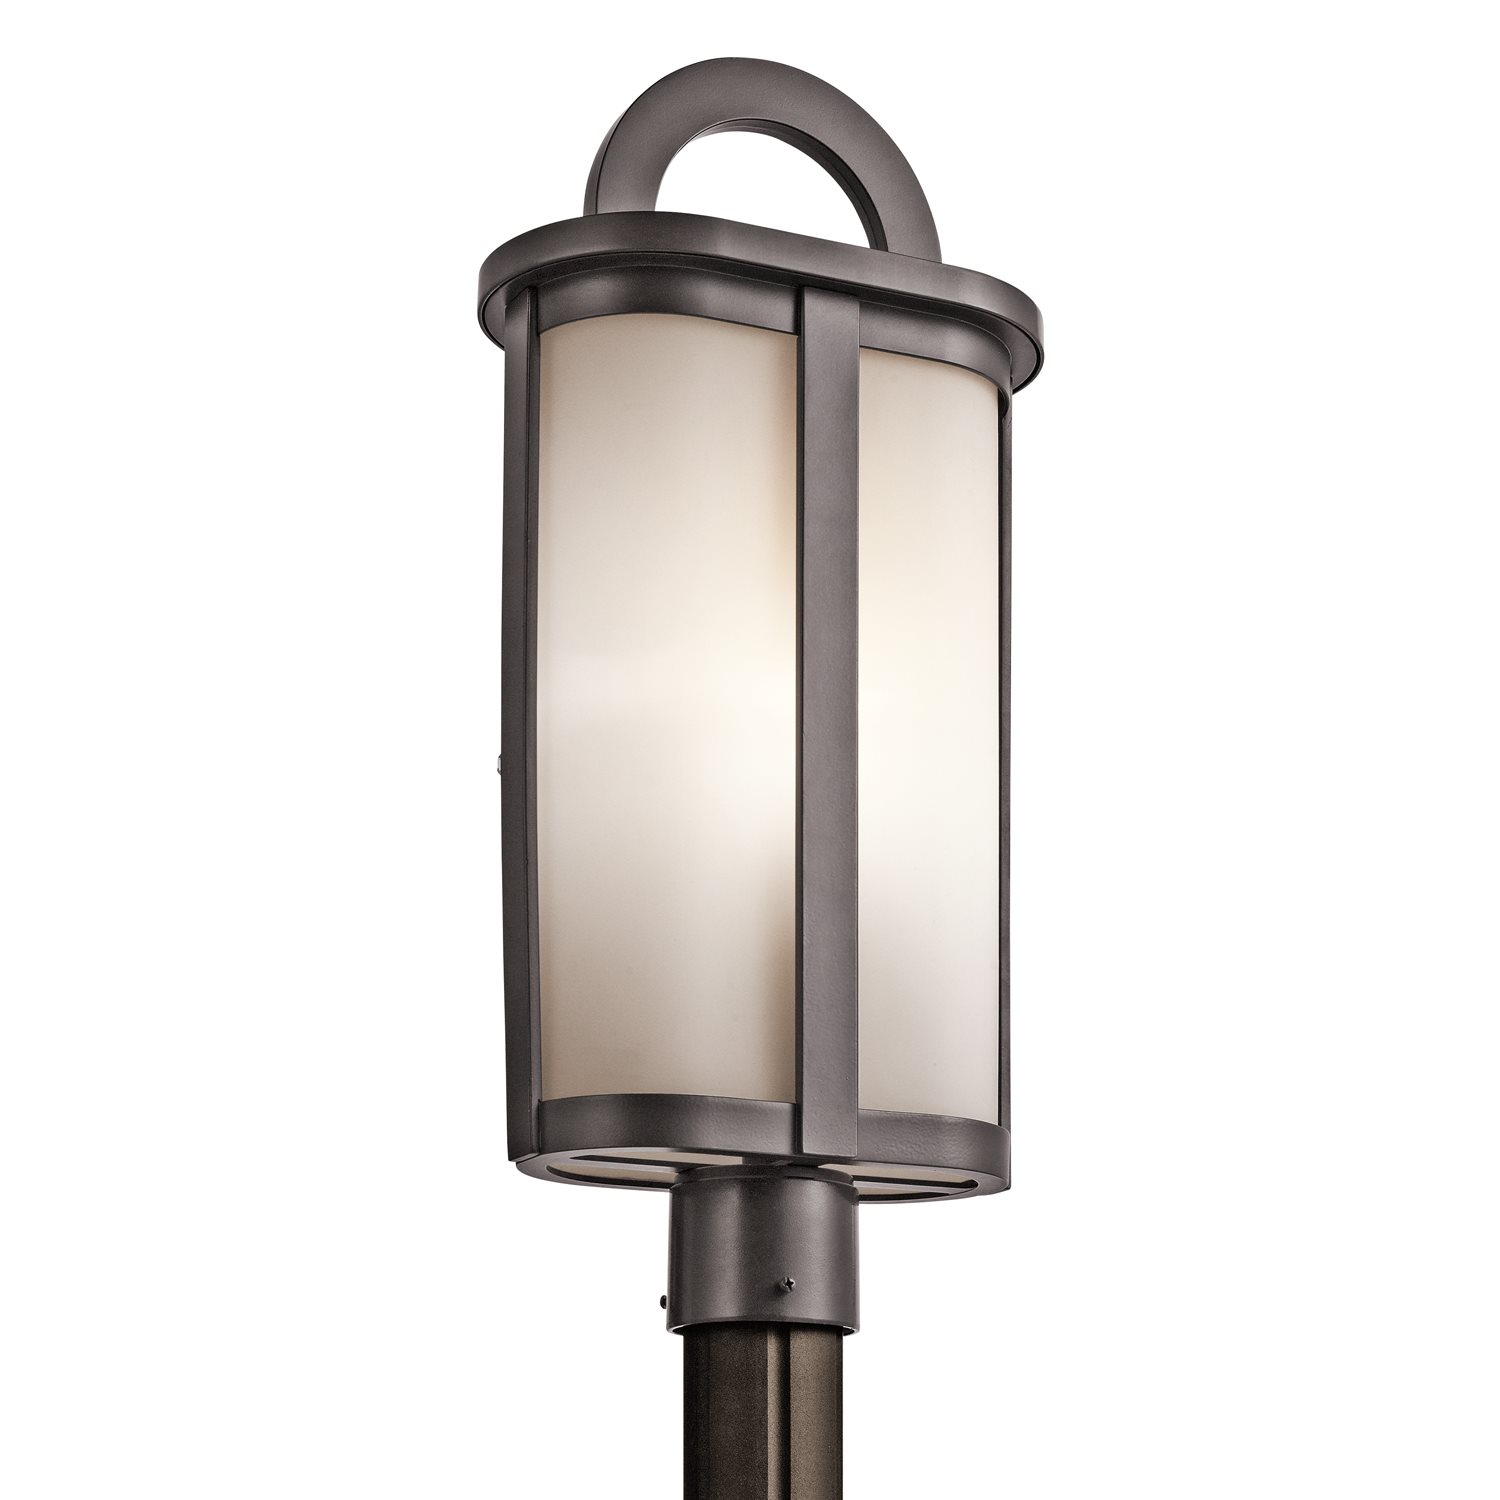 Kichler lighting 49471az rivera modern contemporary for Contemporary outdoor post light fixtures